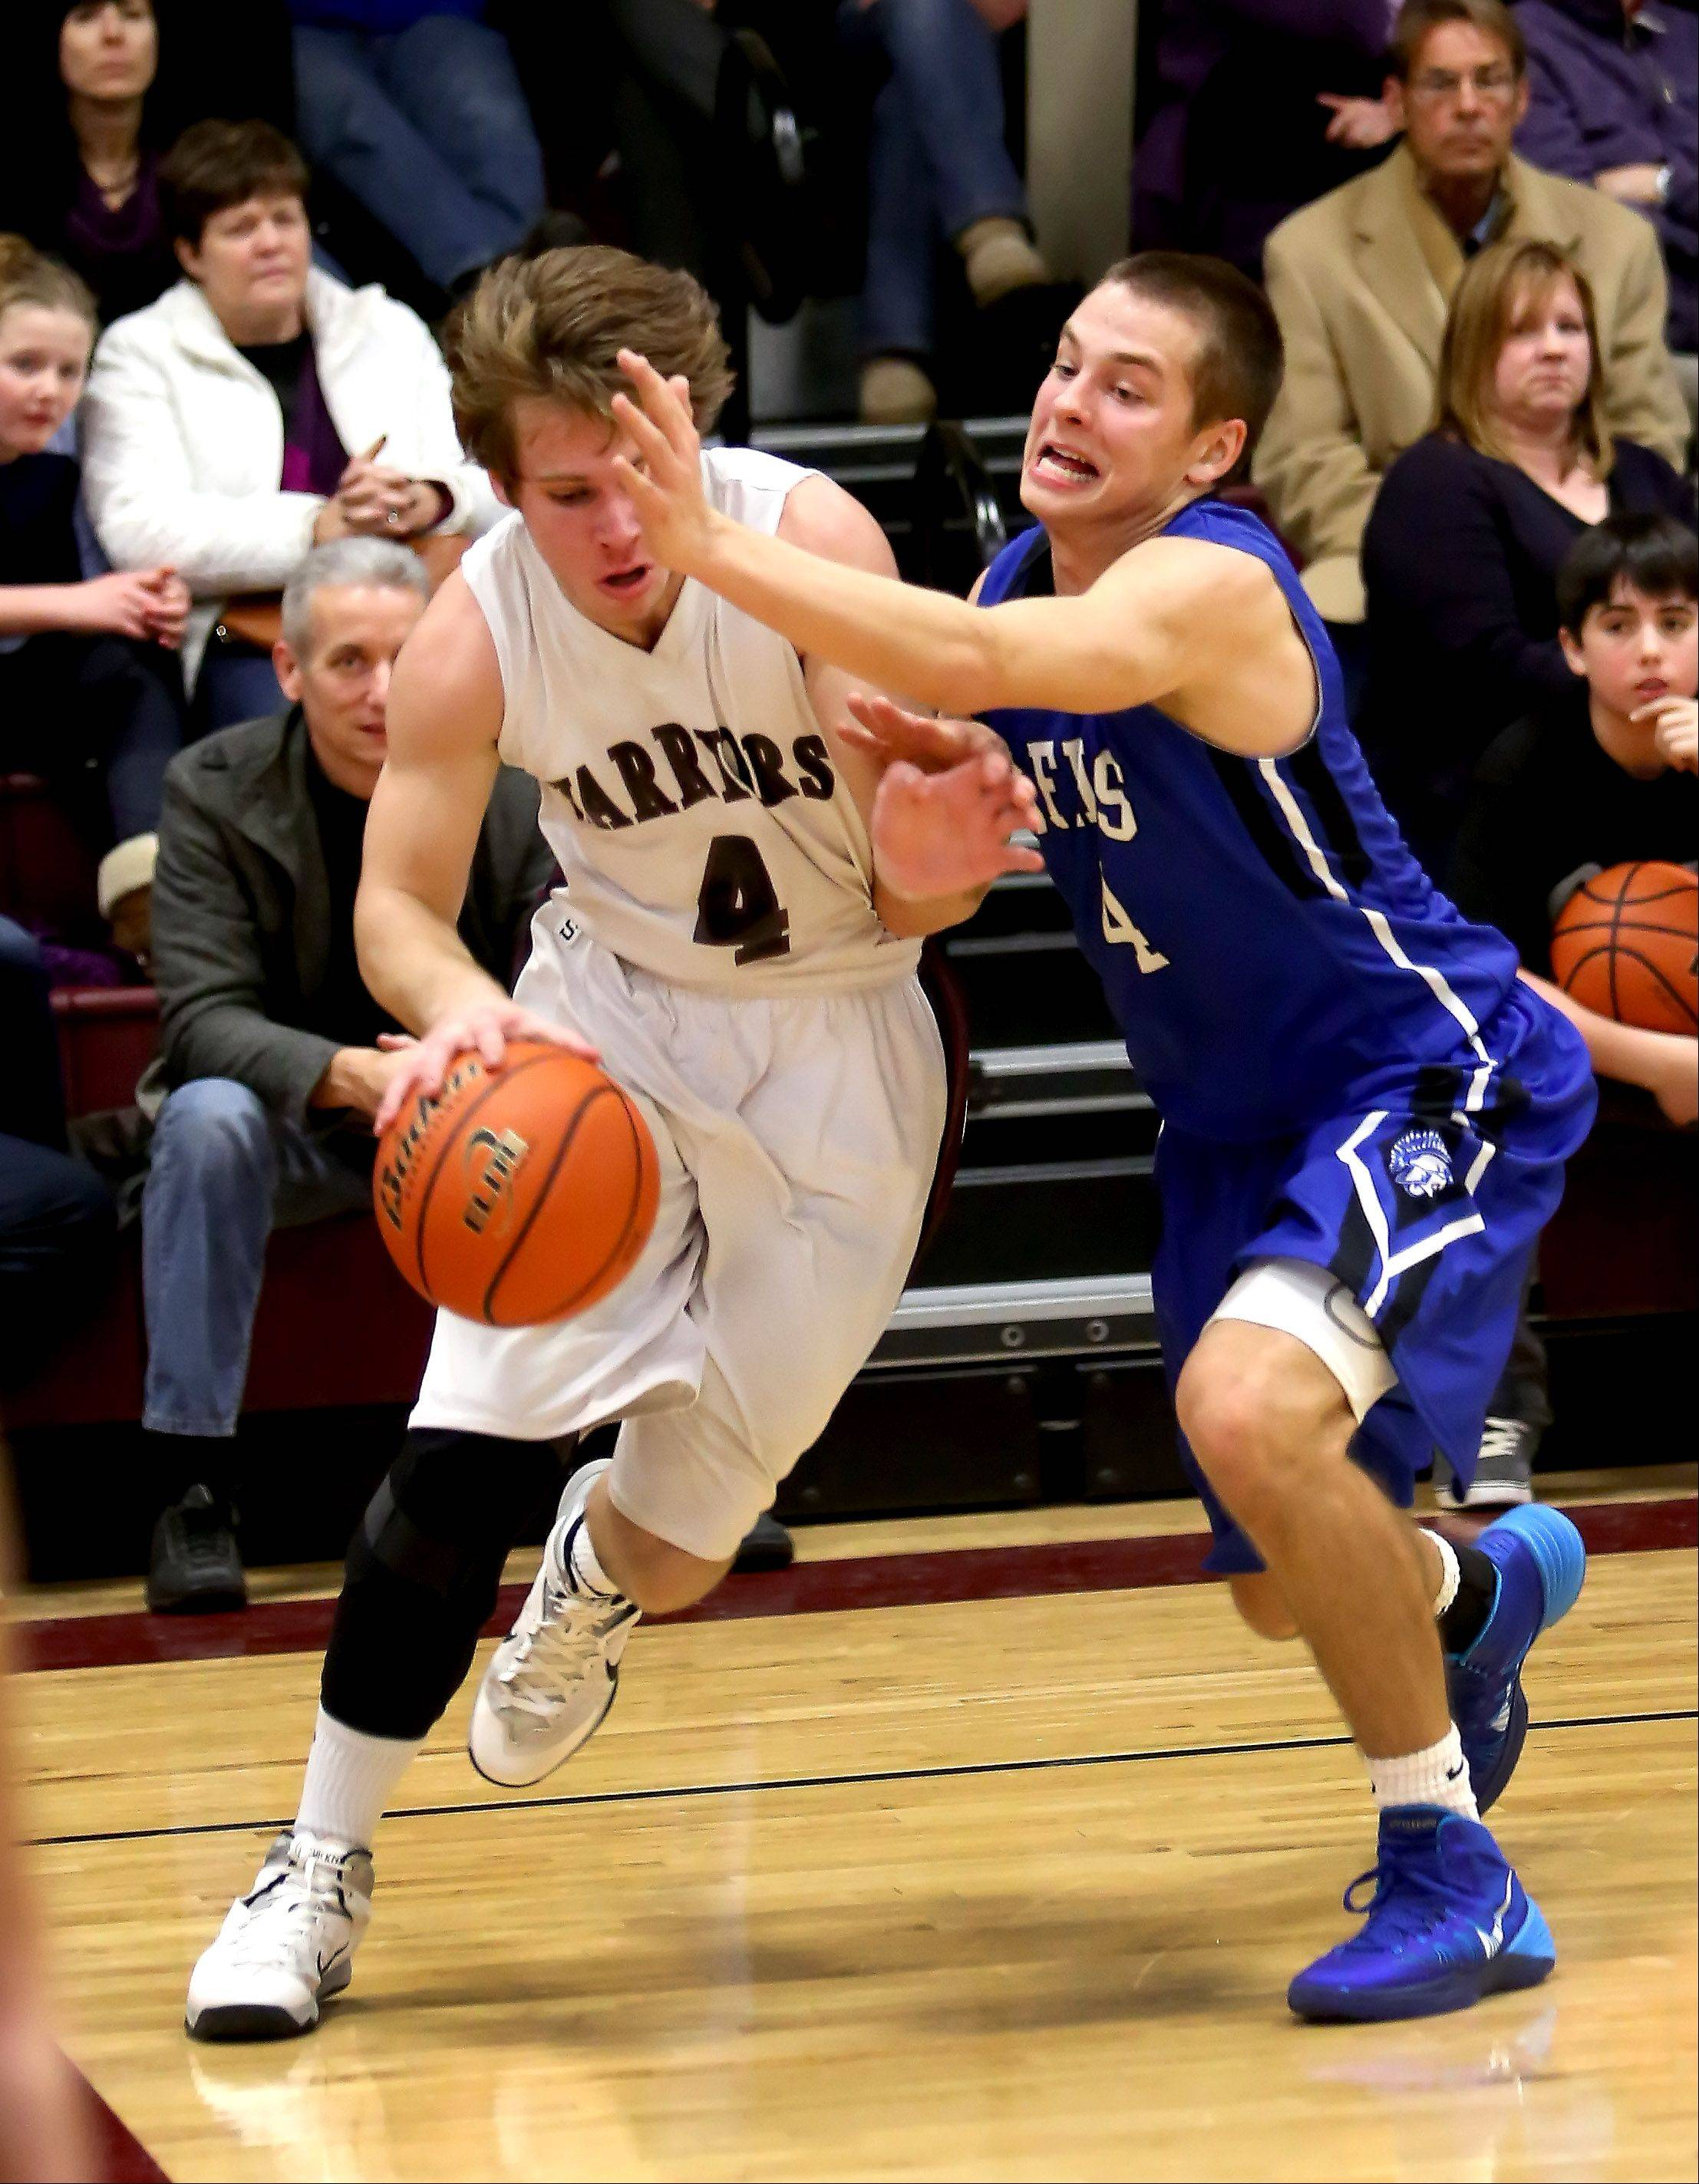 Wheaton Academy's Chris Johnson, left, drives around Zach Prociuk of St. Francis during boys basketball in West Chicago on Tuesday.